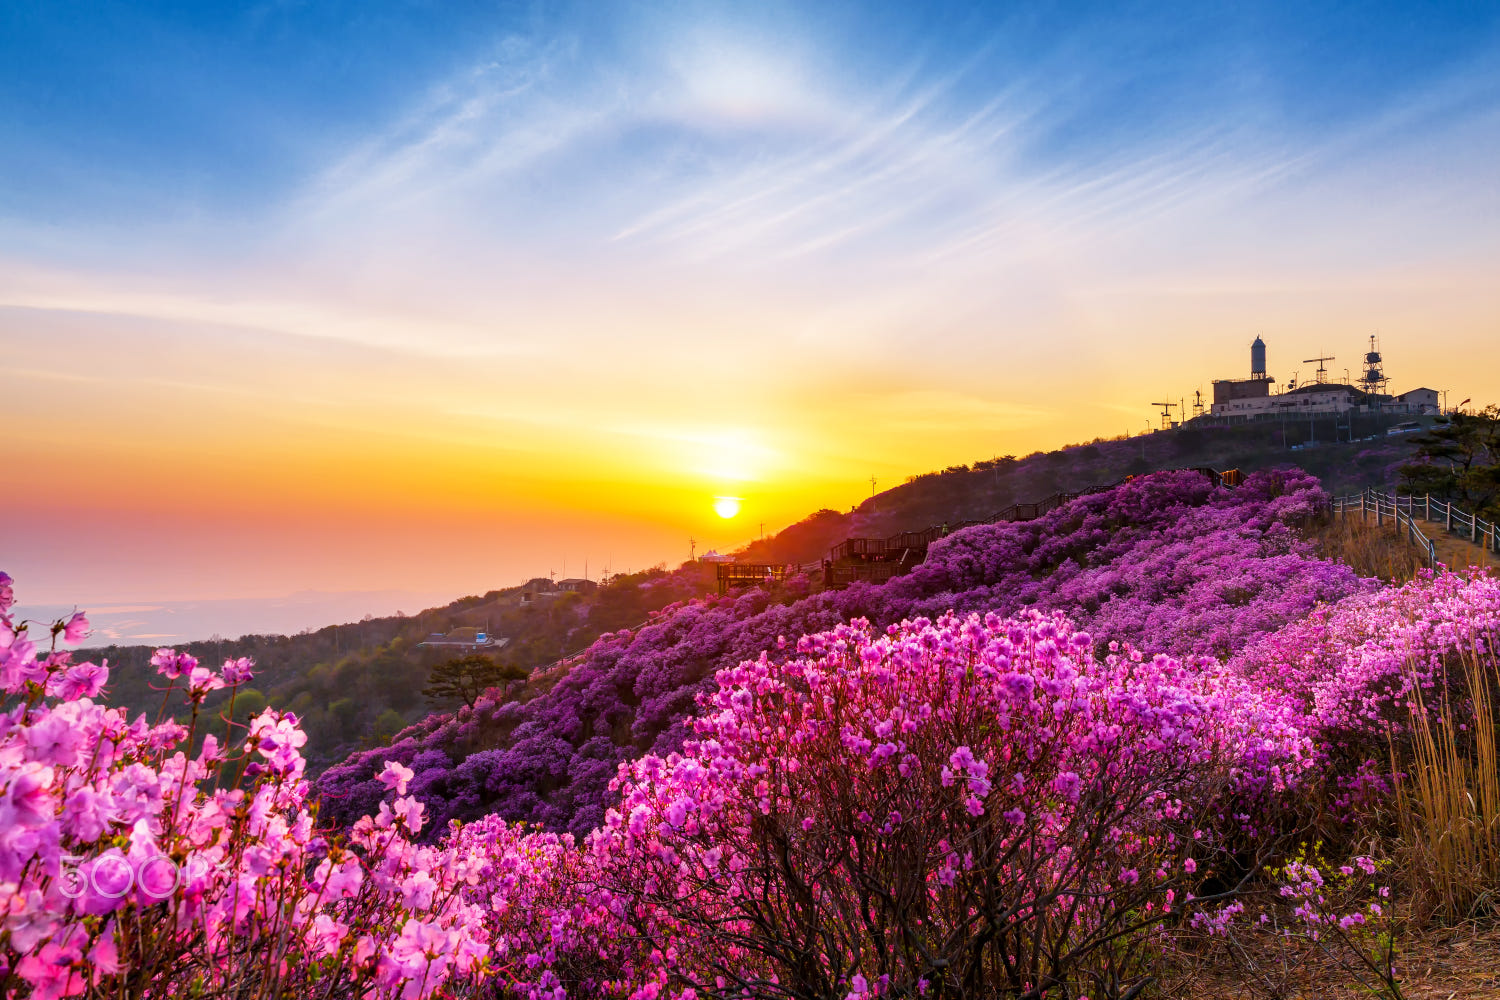 colorful spring photography by gwangseop eom